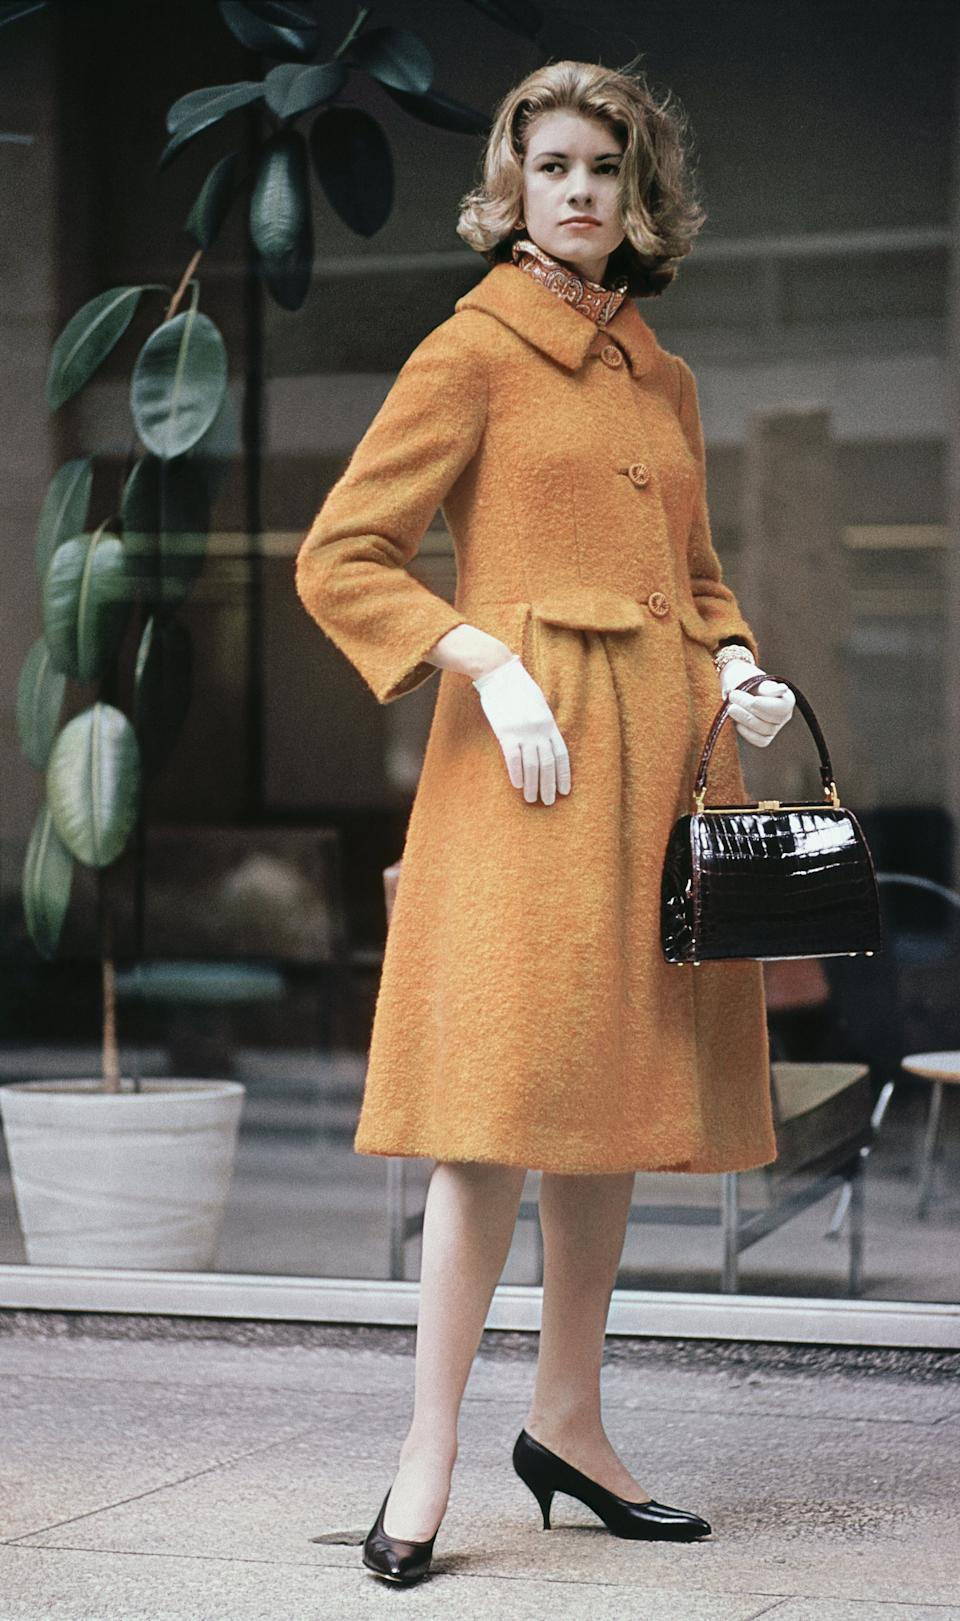 Martha Stewart in New York City in 1961.